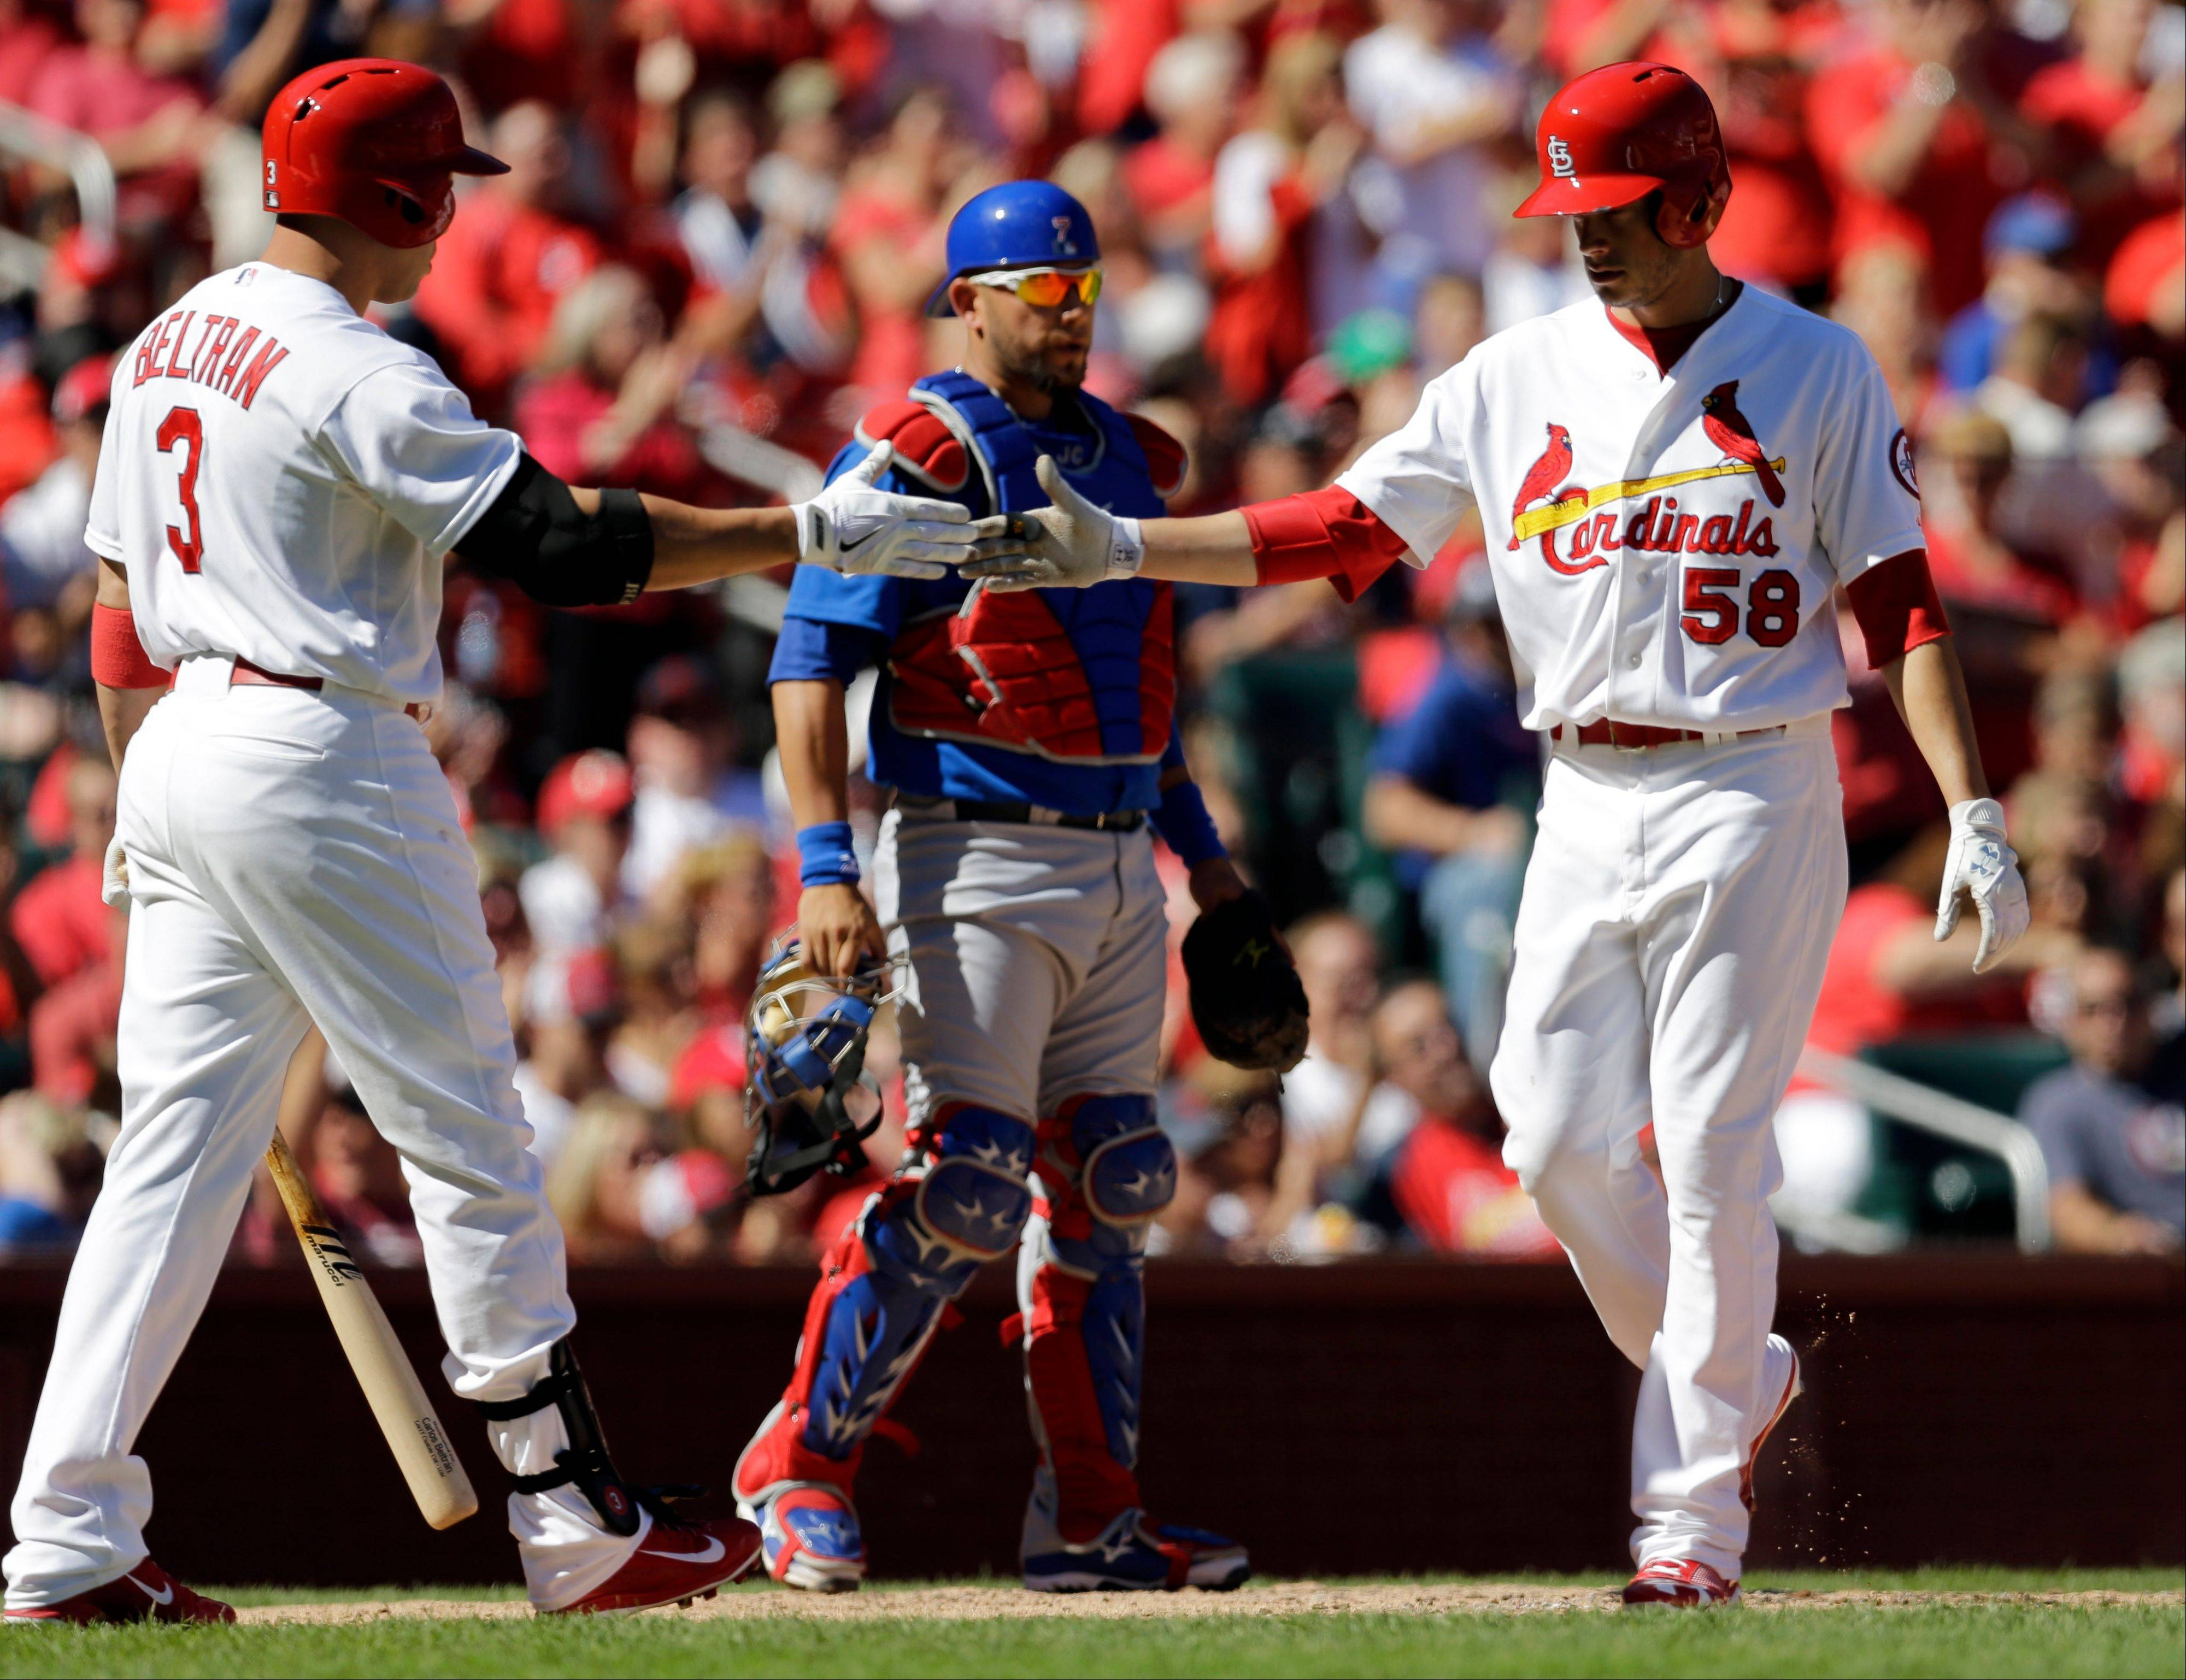 St. Louis Cardinals� Joe Kelly, right, is congratulated by teammate Carlos Beltran after scoring as Chicago Cubs catcher J.C. Boscan, center, looks on during the third inning of a baseball game on Sunday, Sept. 29, 2013, in St. Louis.